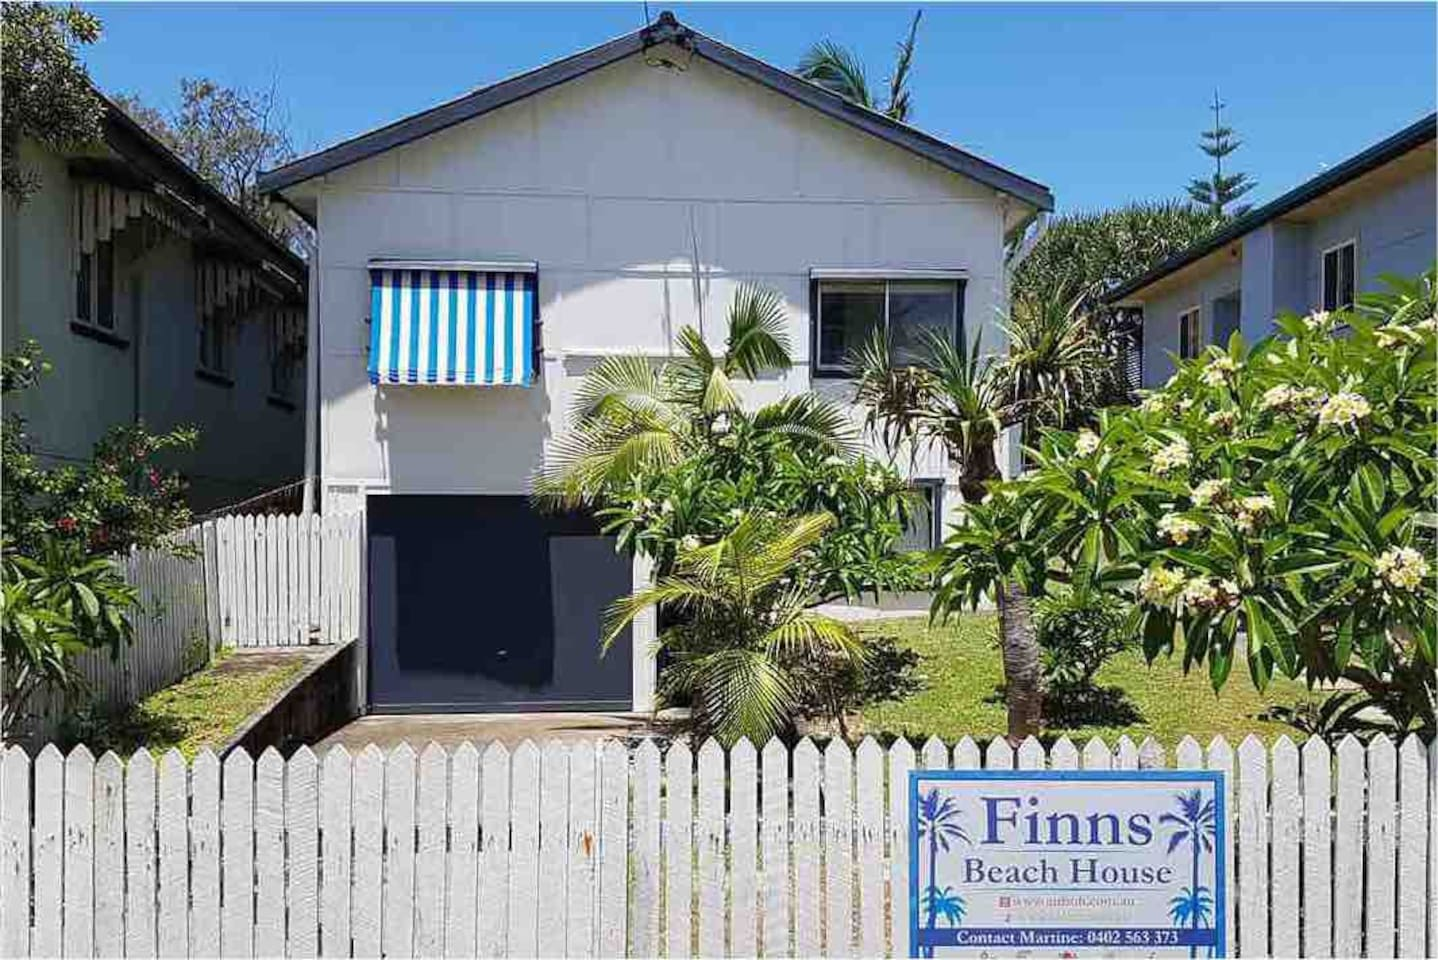 4 bedroom beachside home with direct beach access.